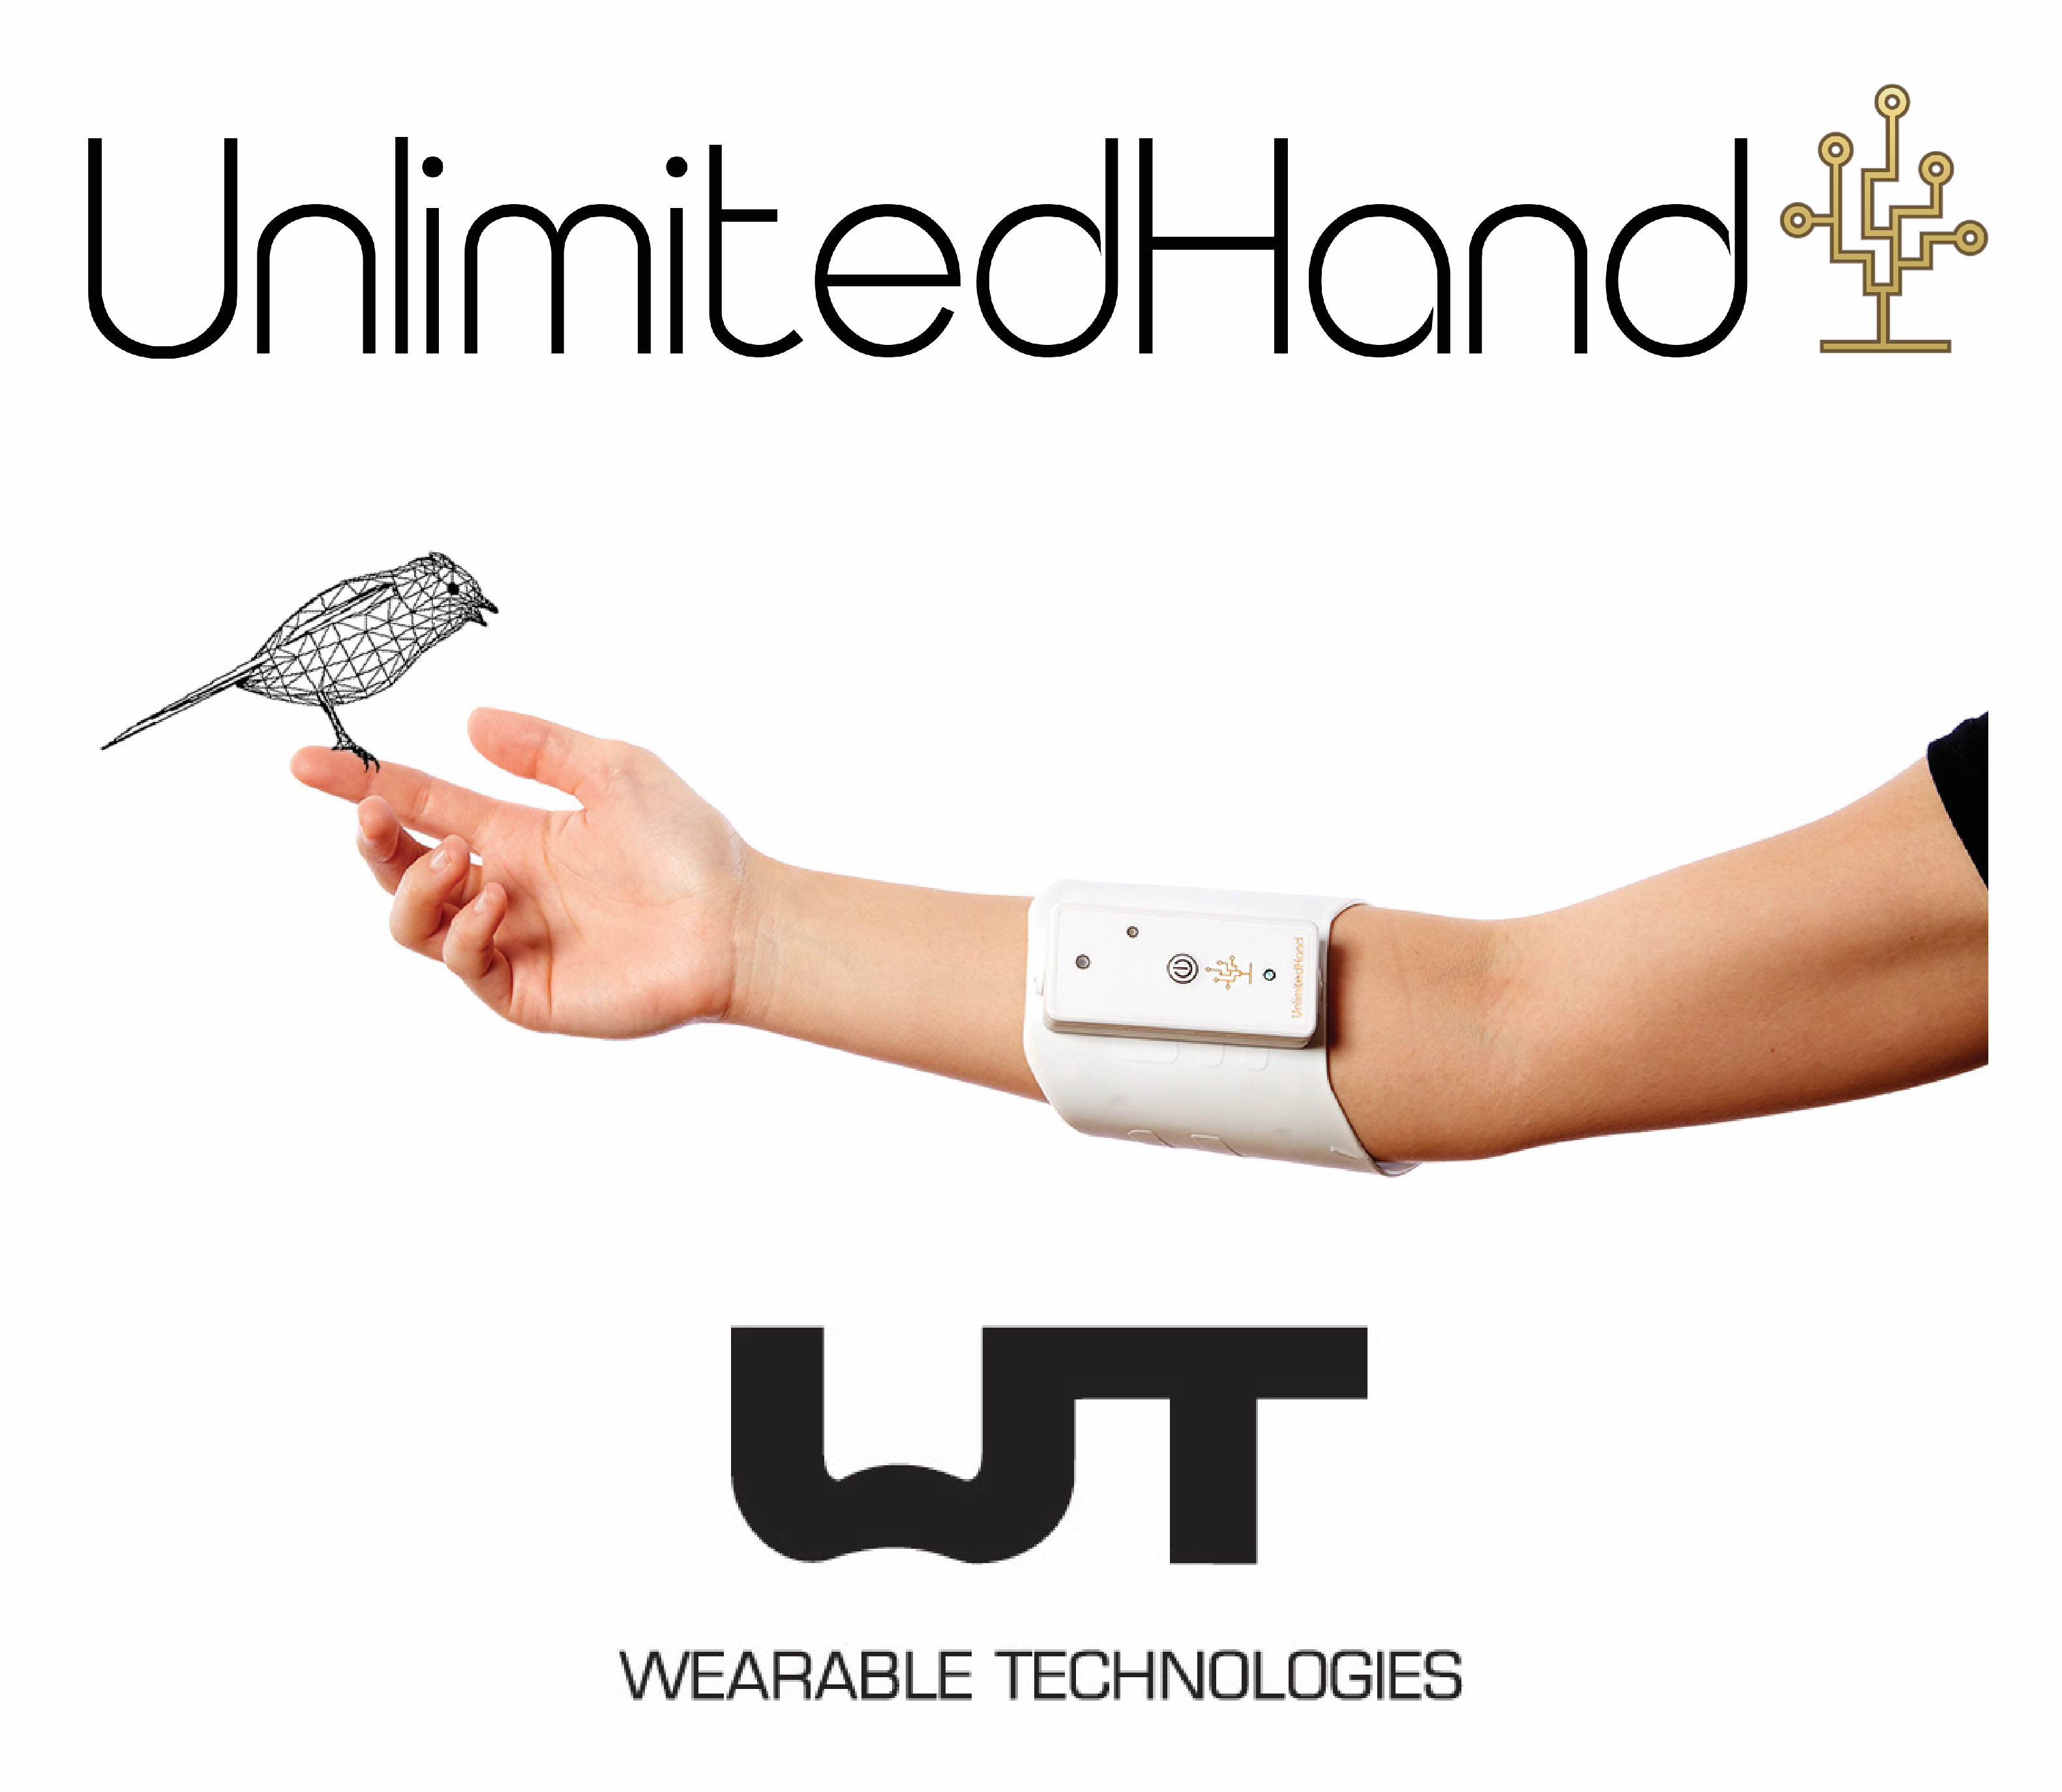 Unlimitedhand haptic game controller finalist of wearable